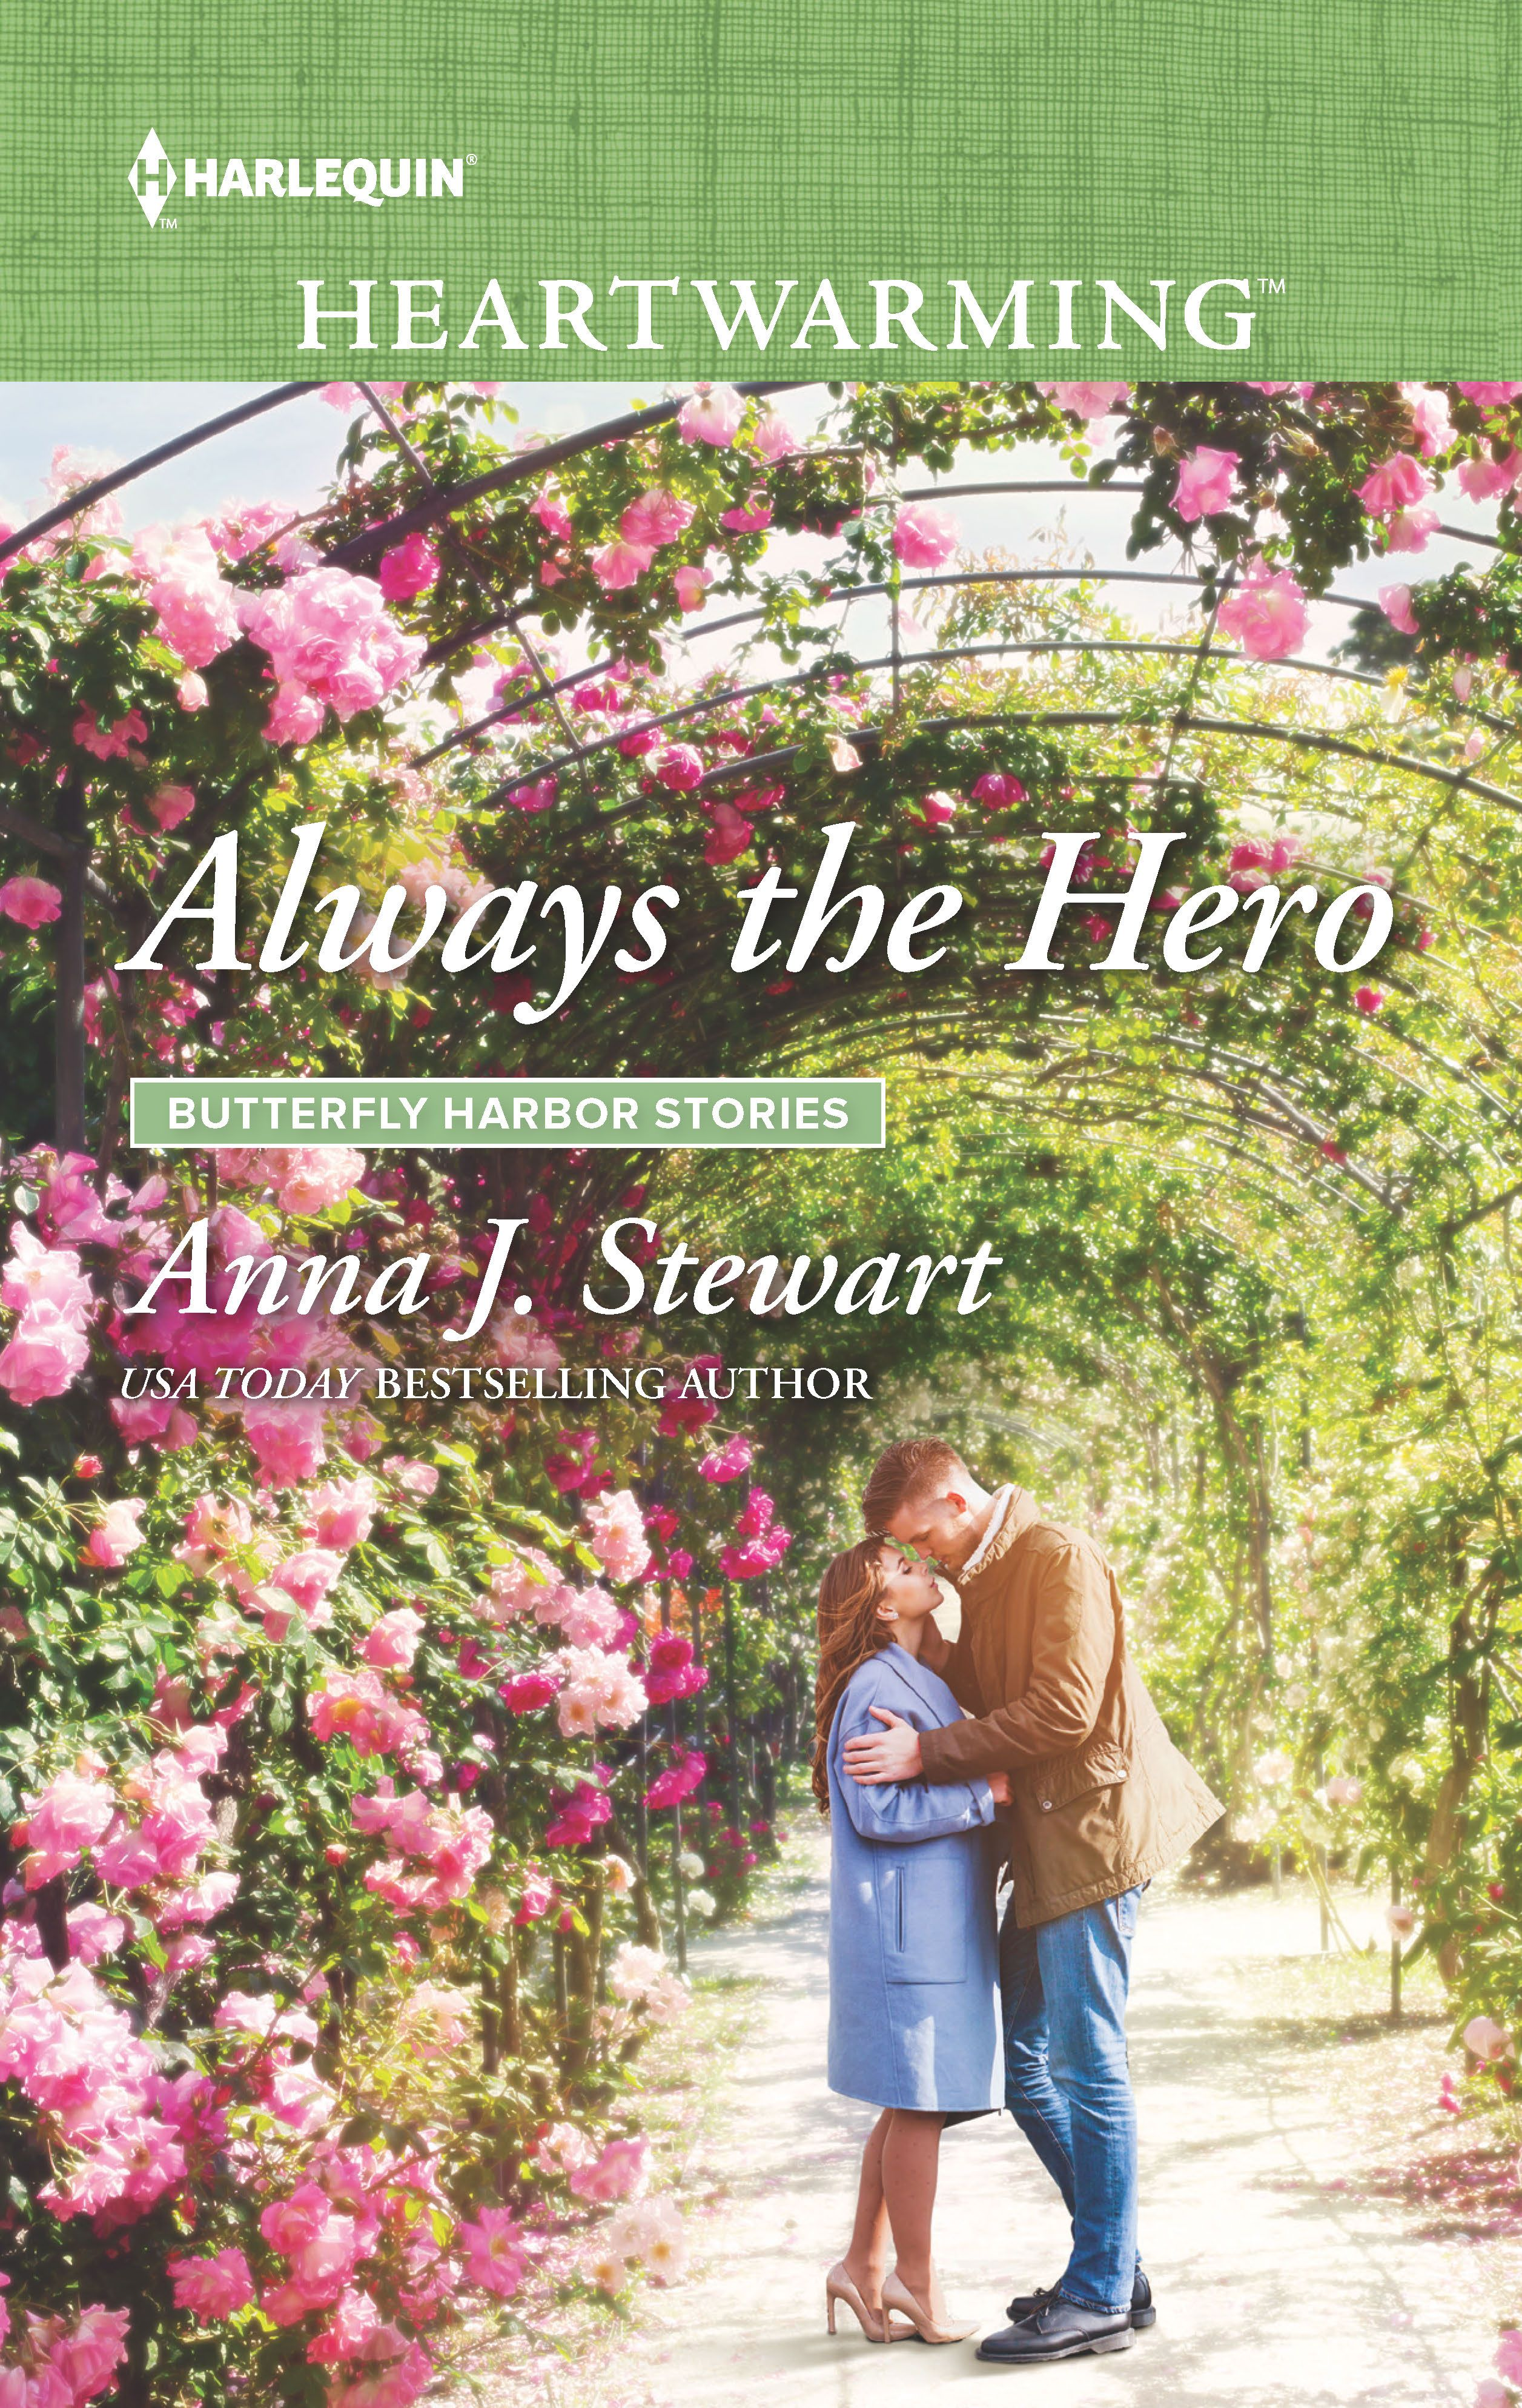 Book 4 in the sweet Butterfly Harbor romance series